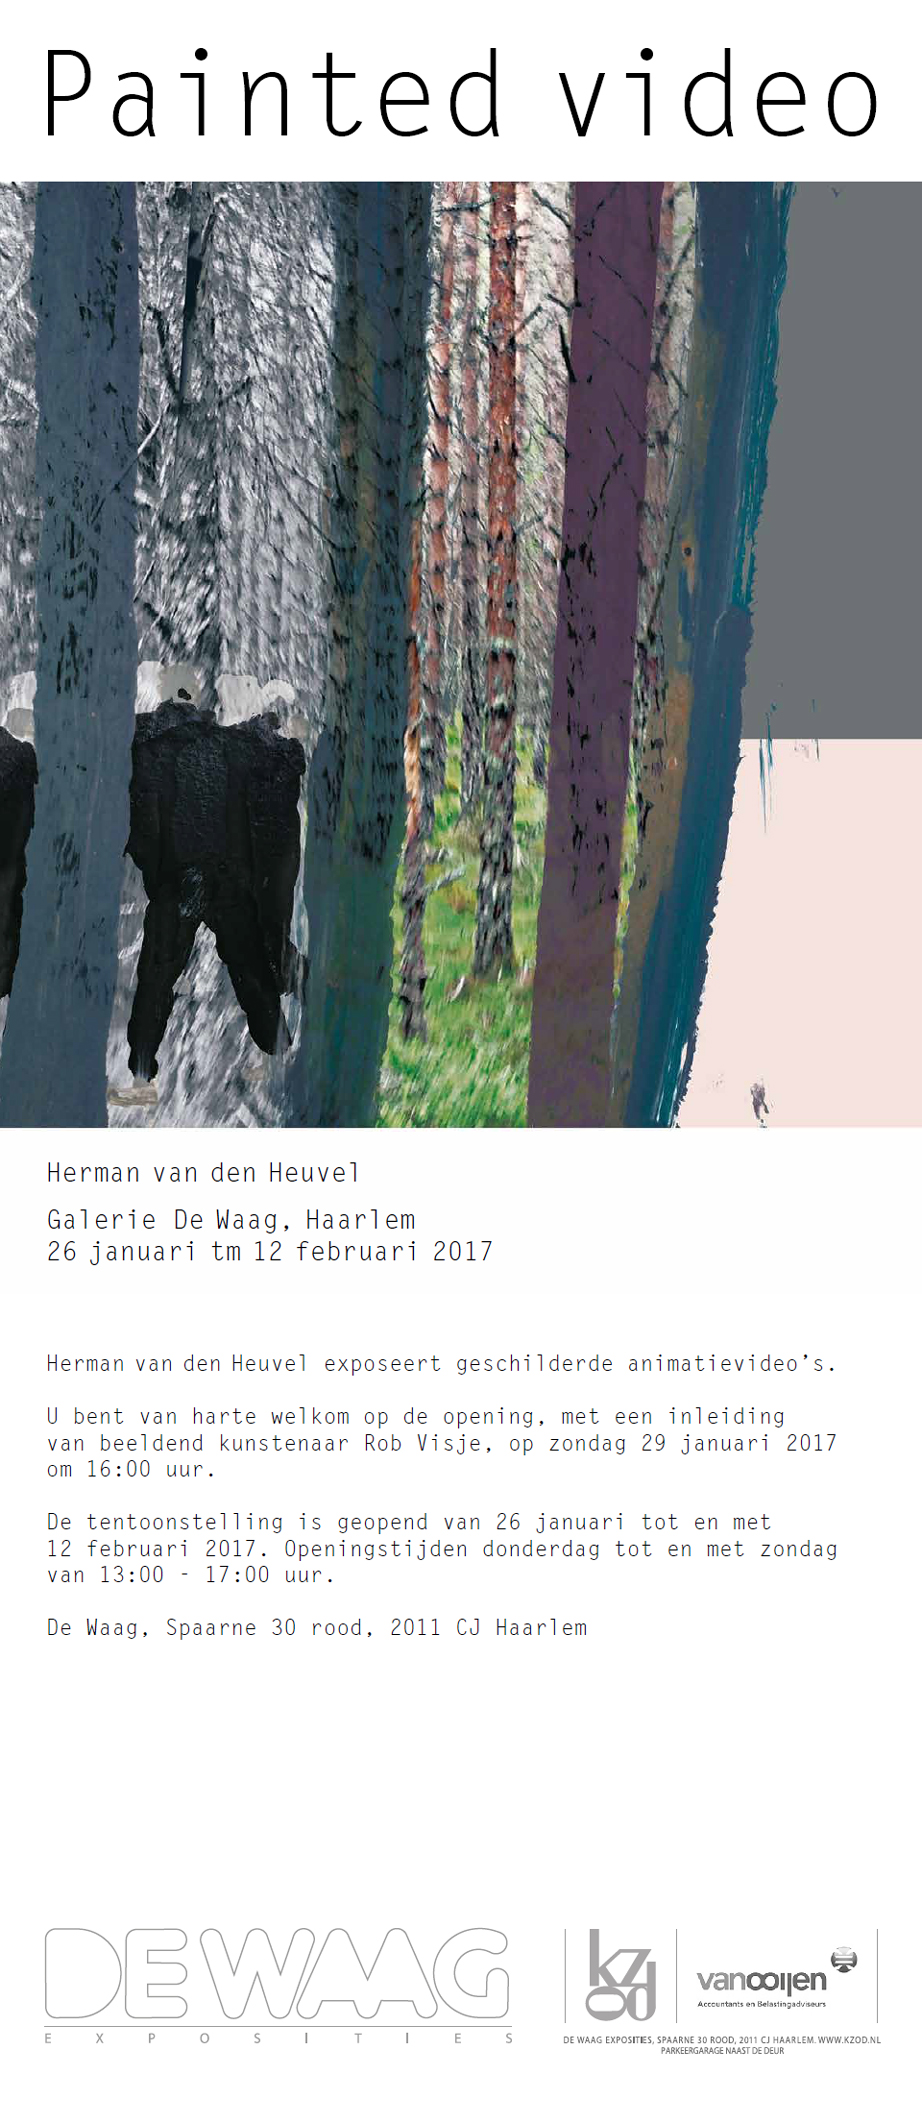 Herman van den Heuvel | Painted video | expositie de Waag